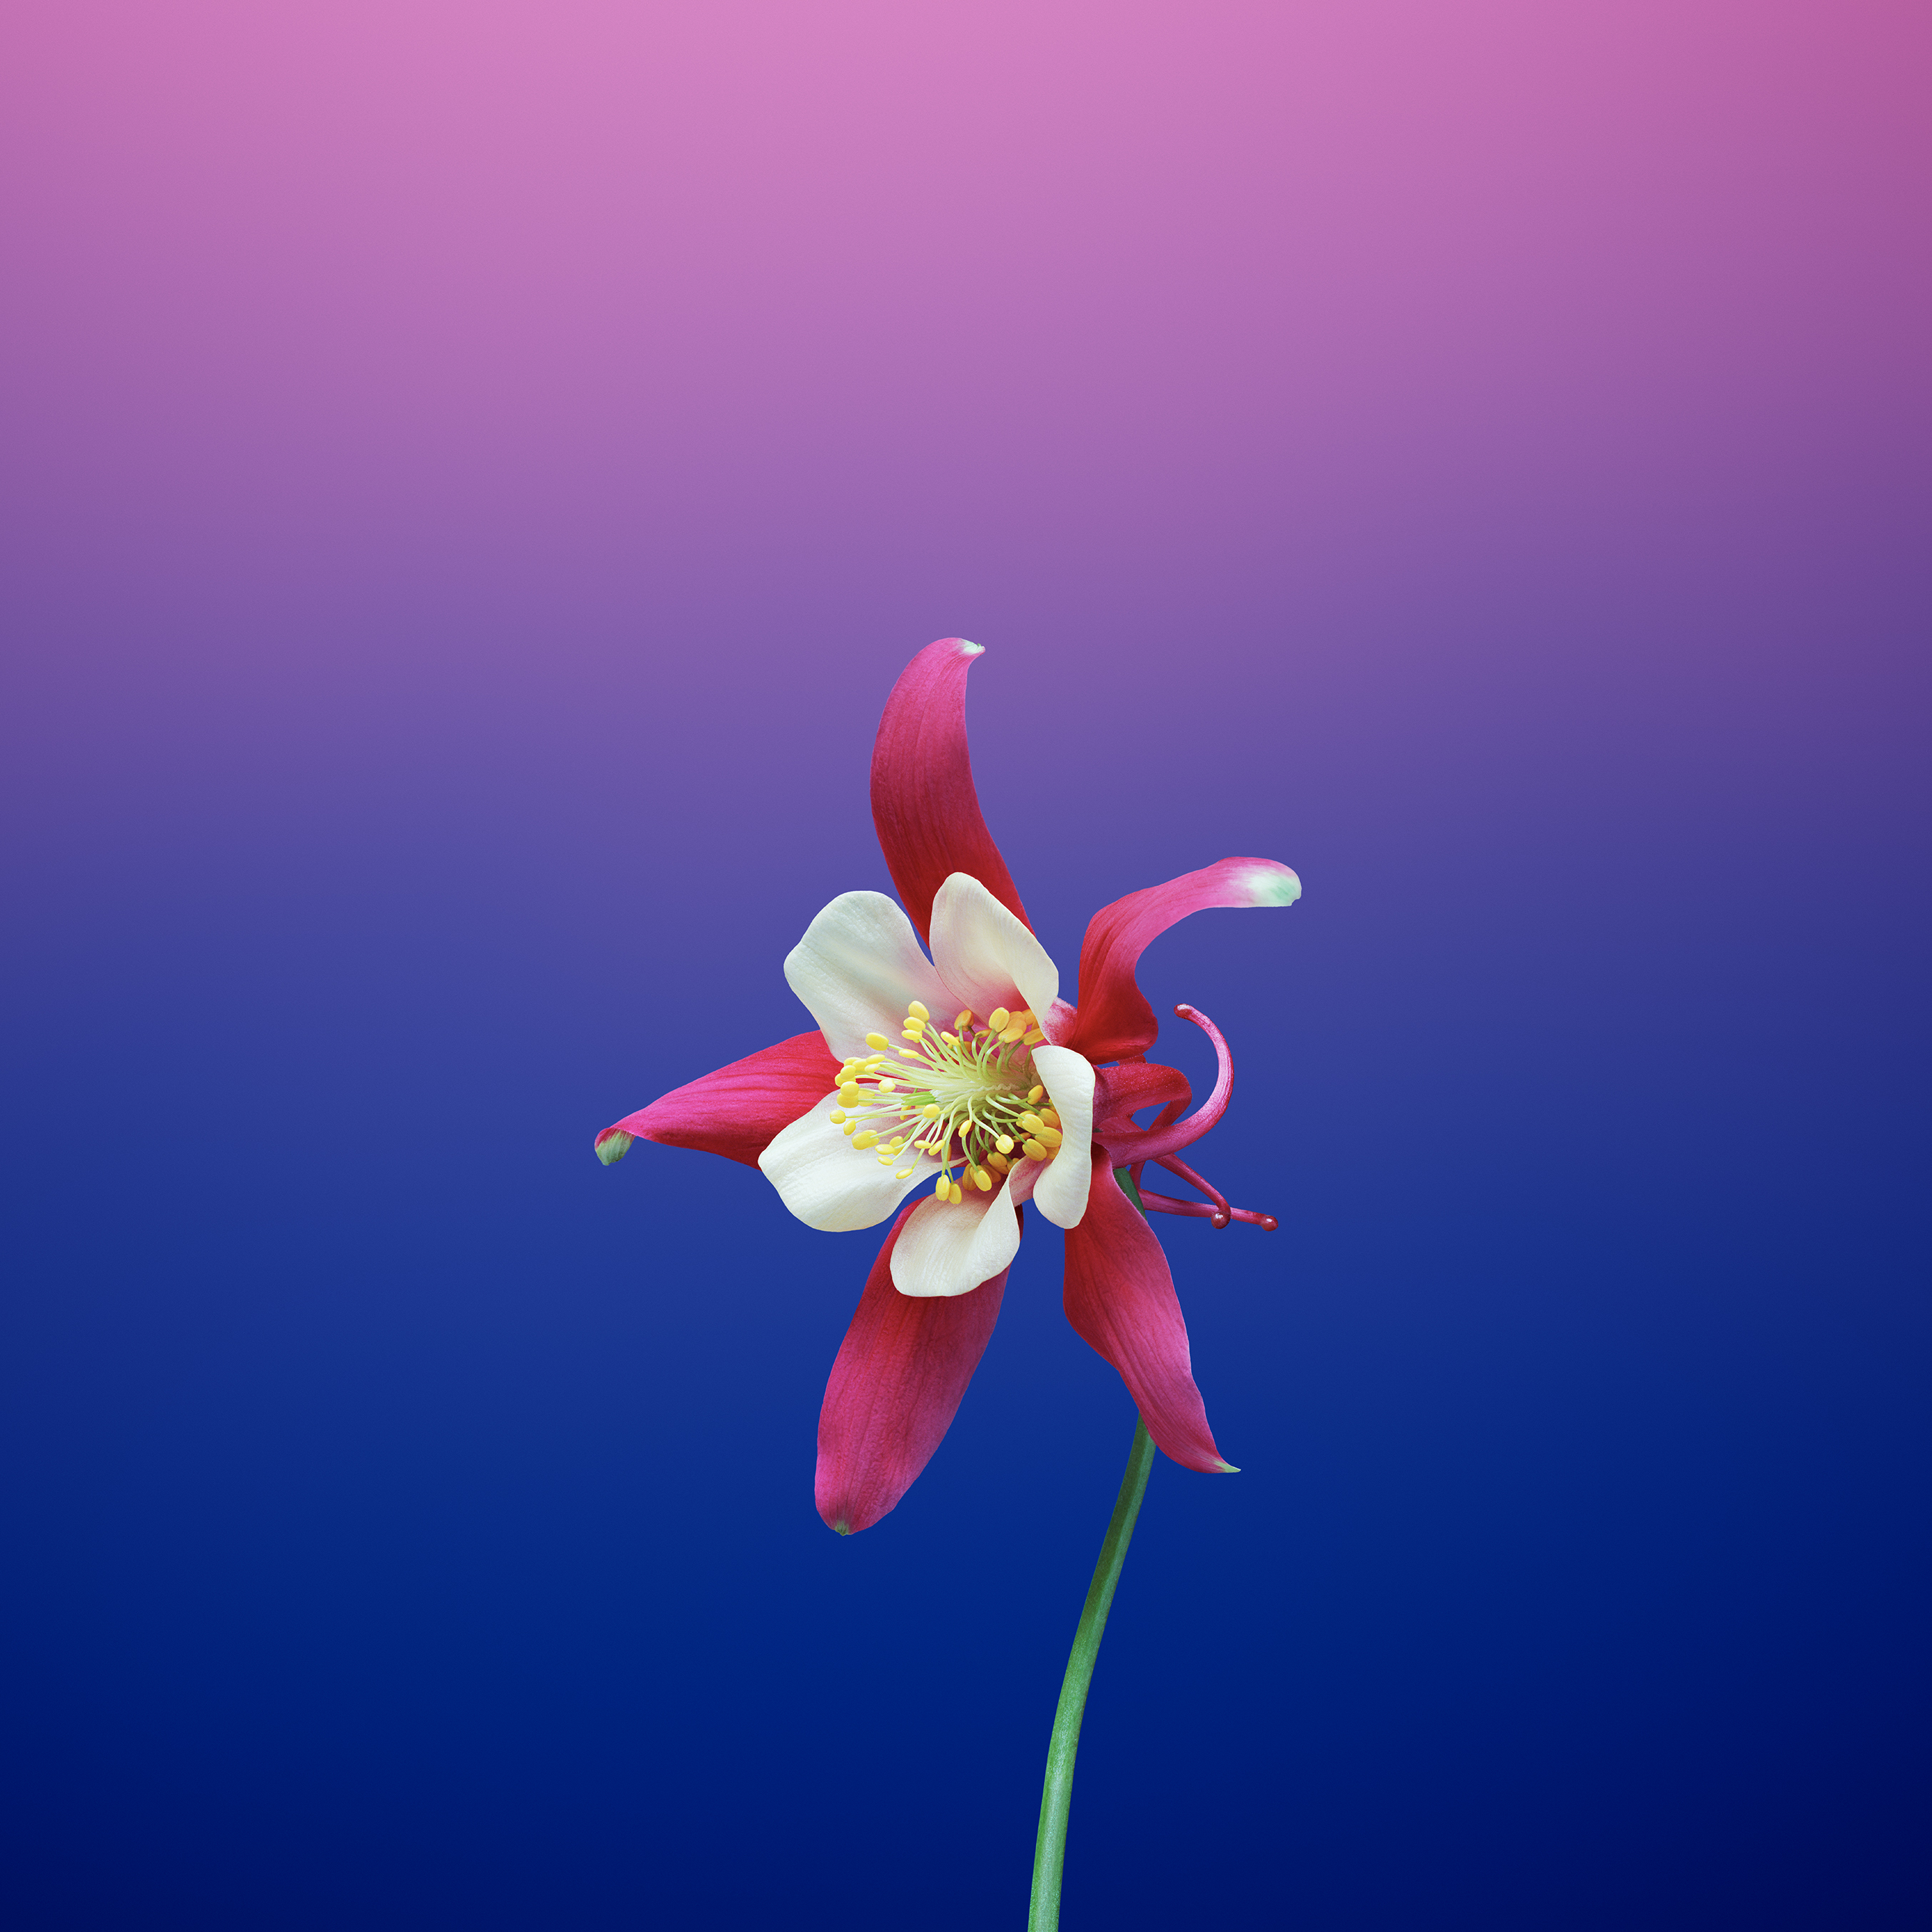 Flower_AQUILEGIA - TechFoogle